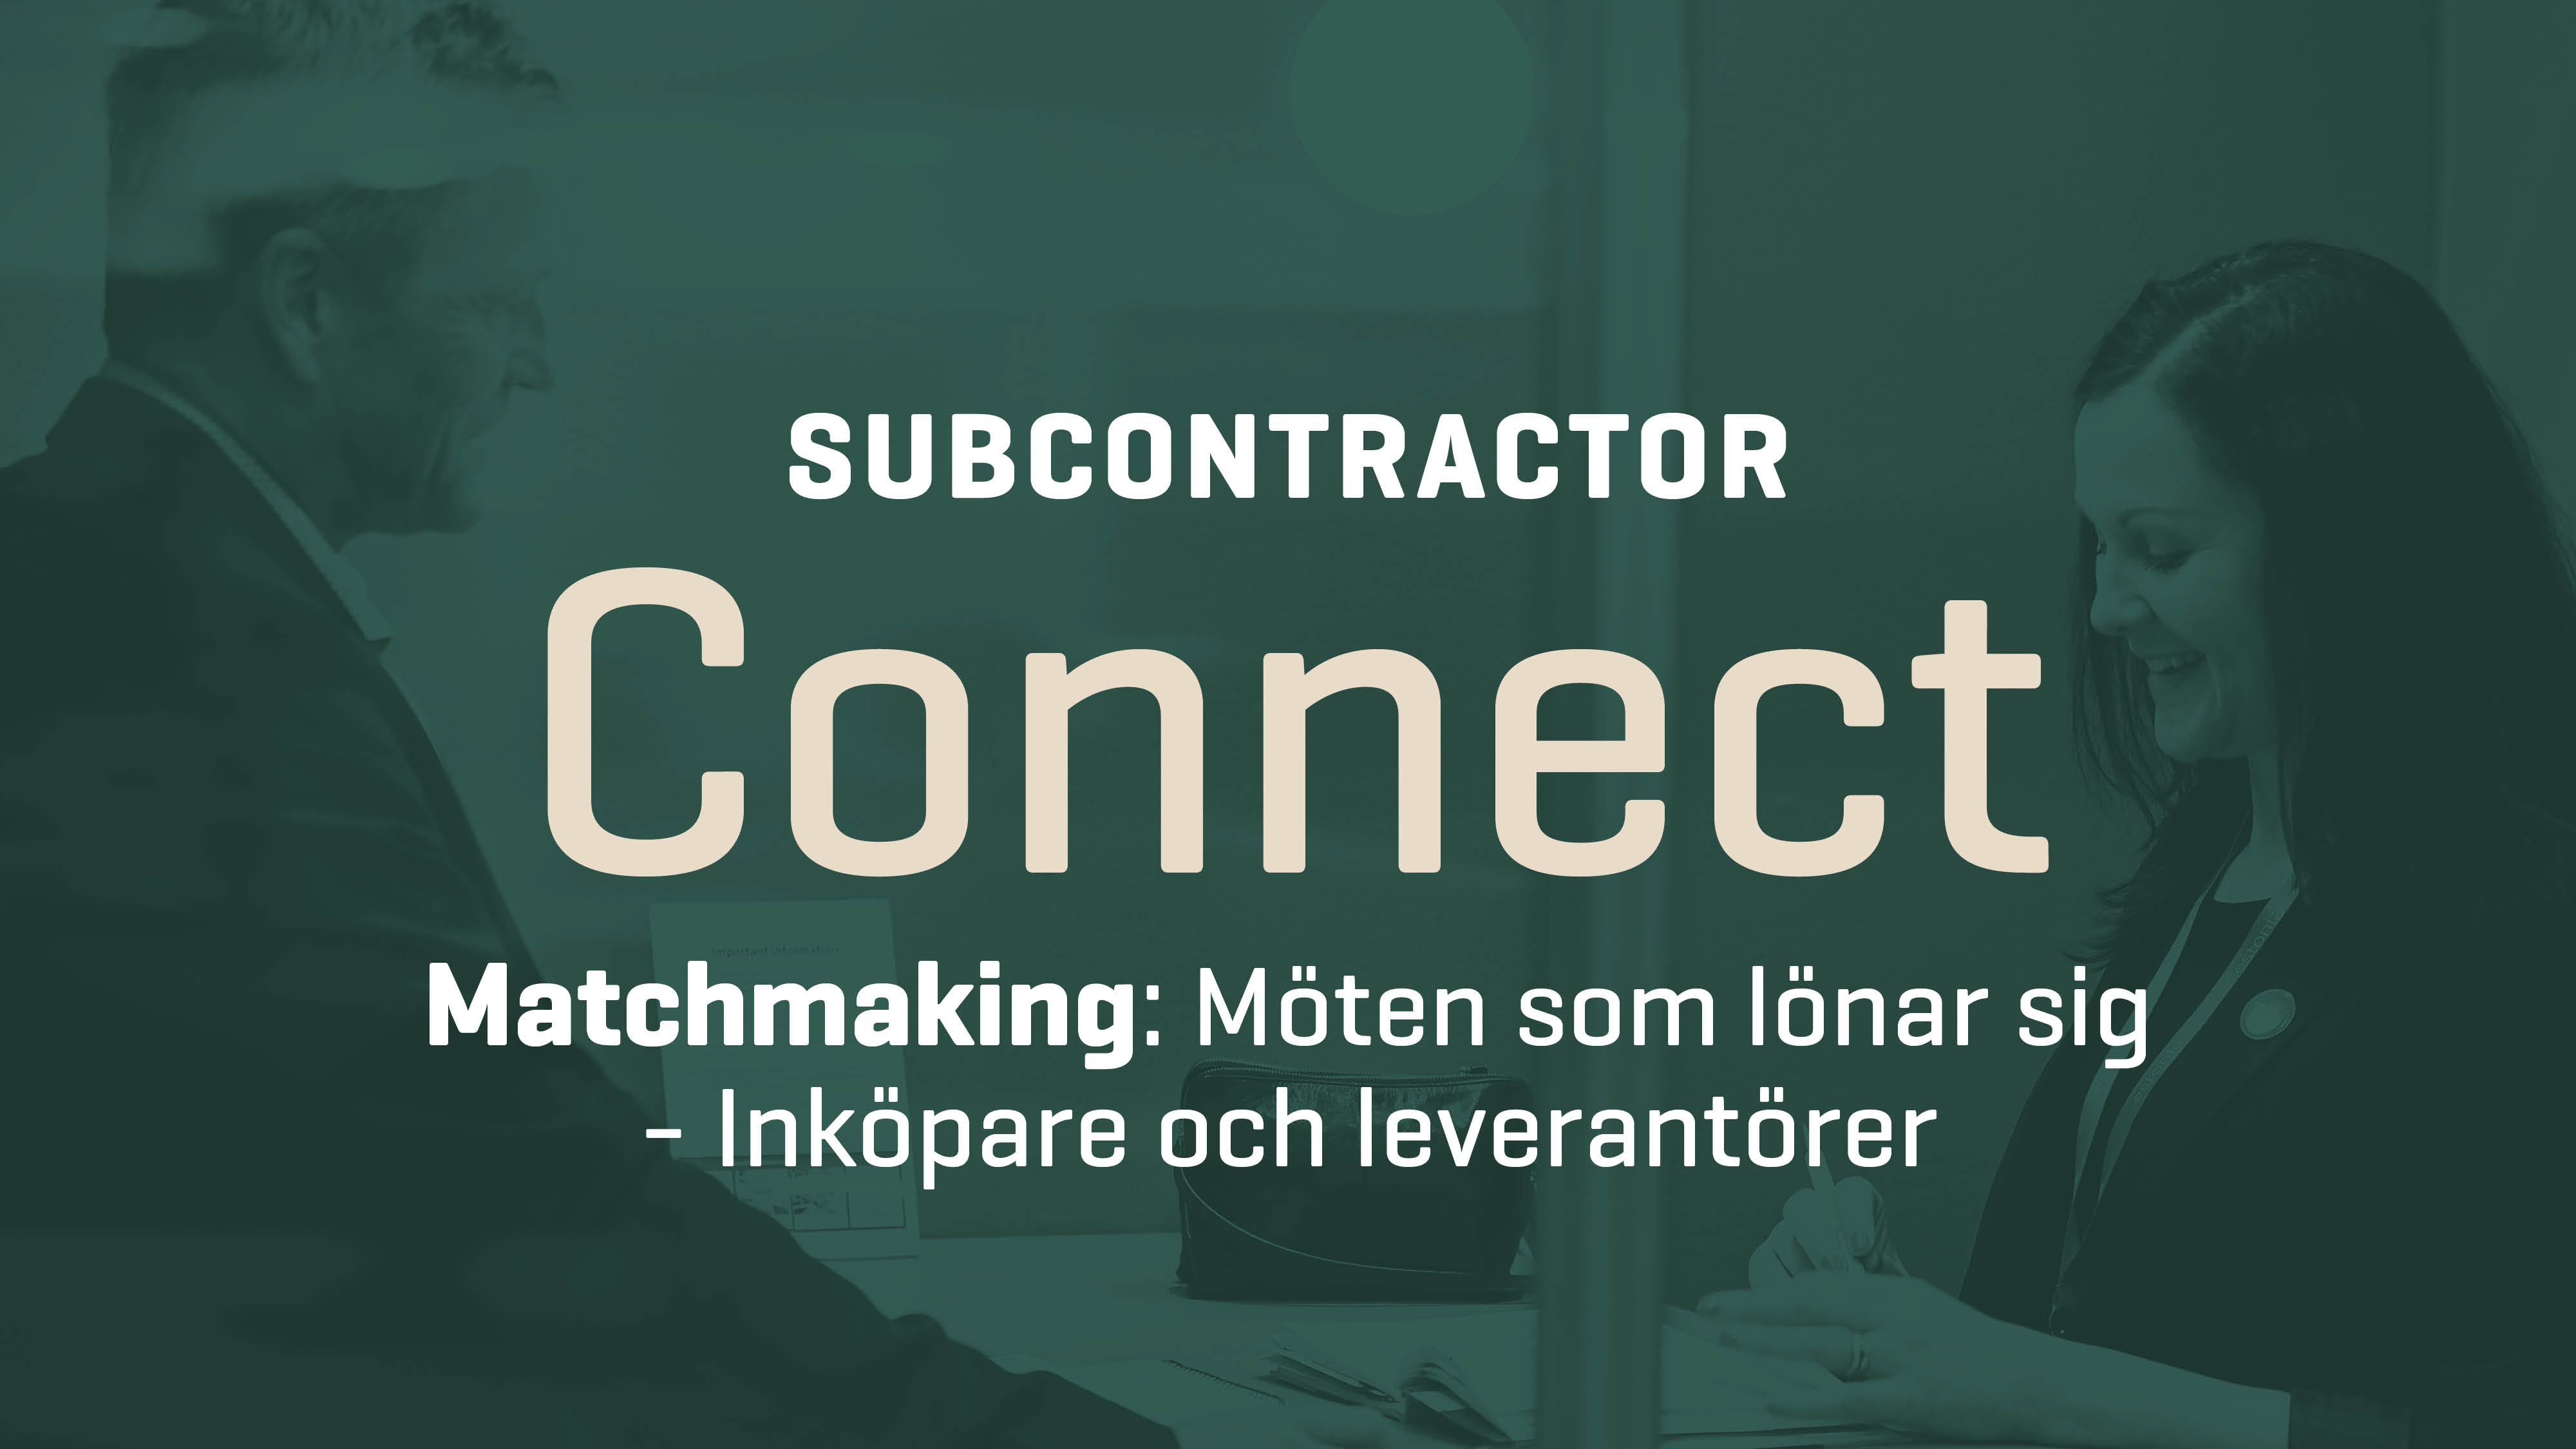 Sucontractor2020_Puffar_Connect_1920x1080.jpg